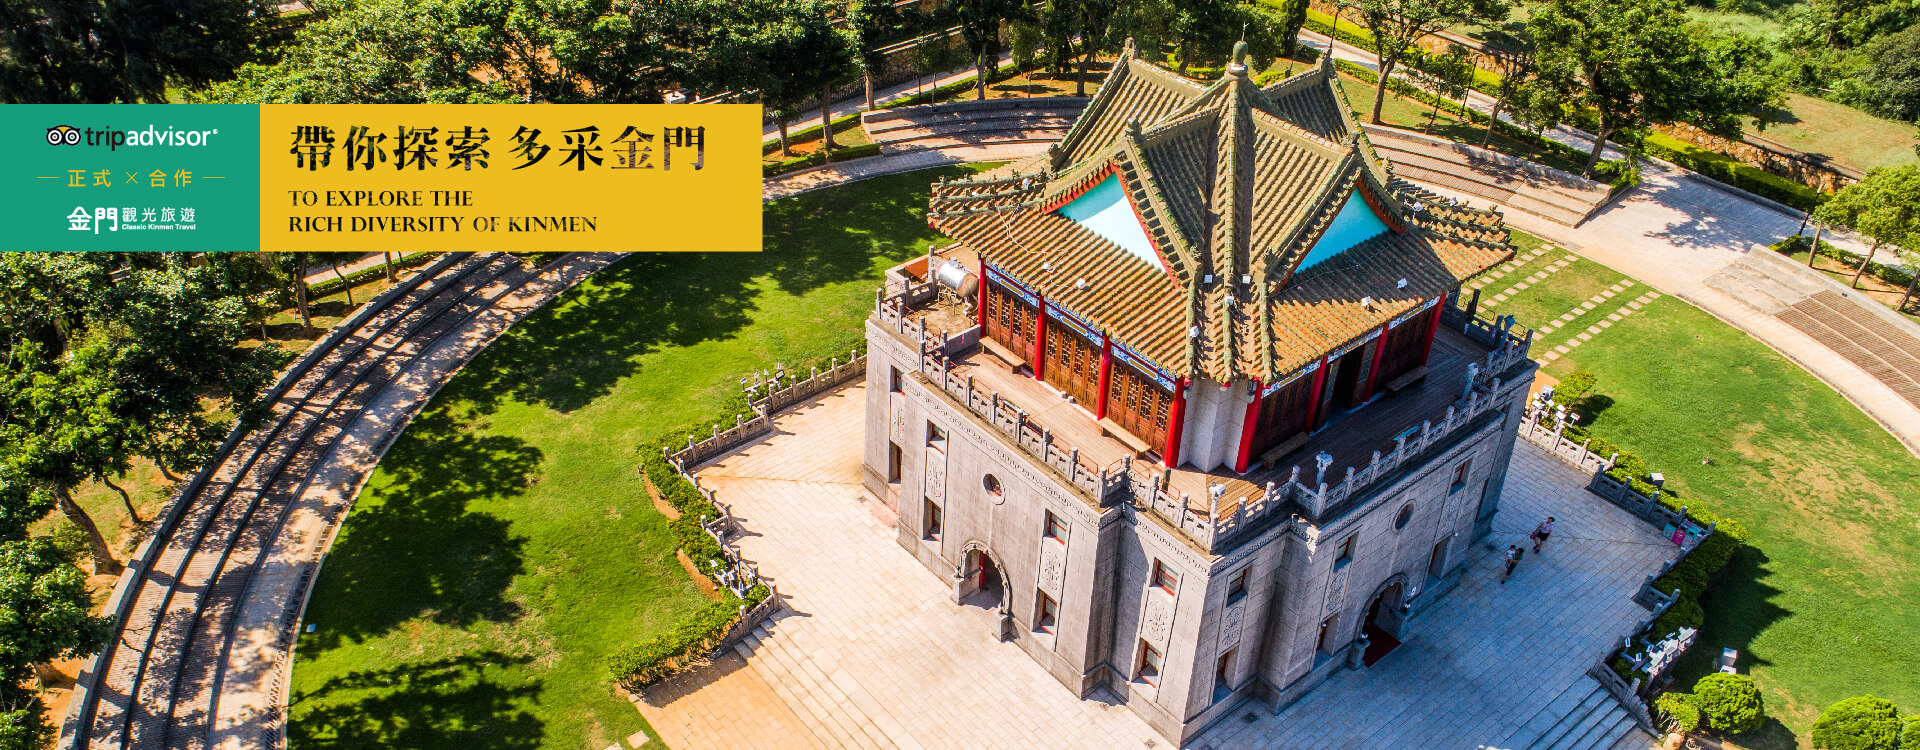 To Explore the Rich Diversity of Kinmen